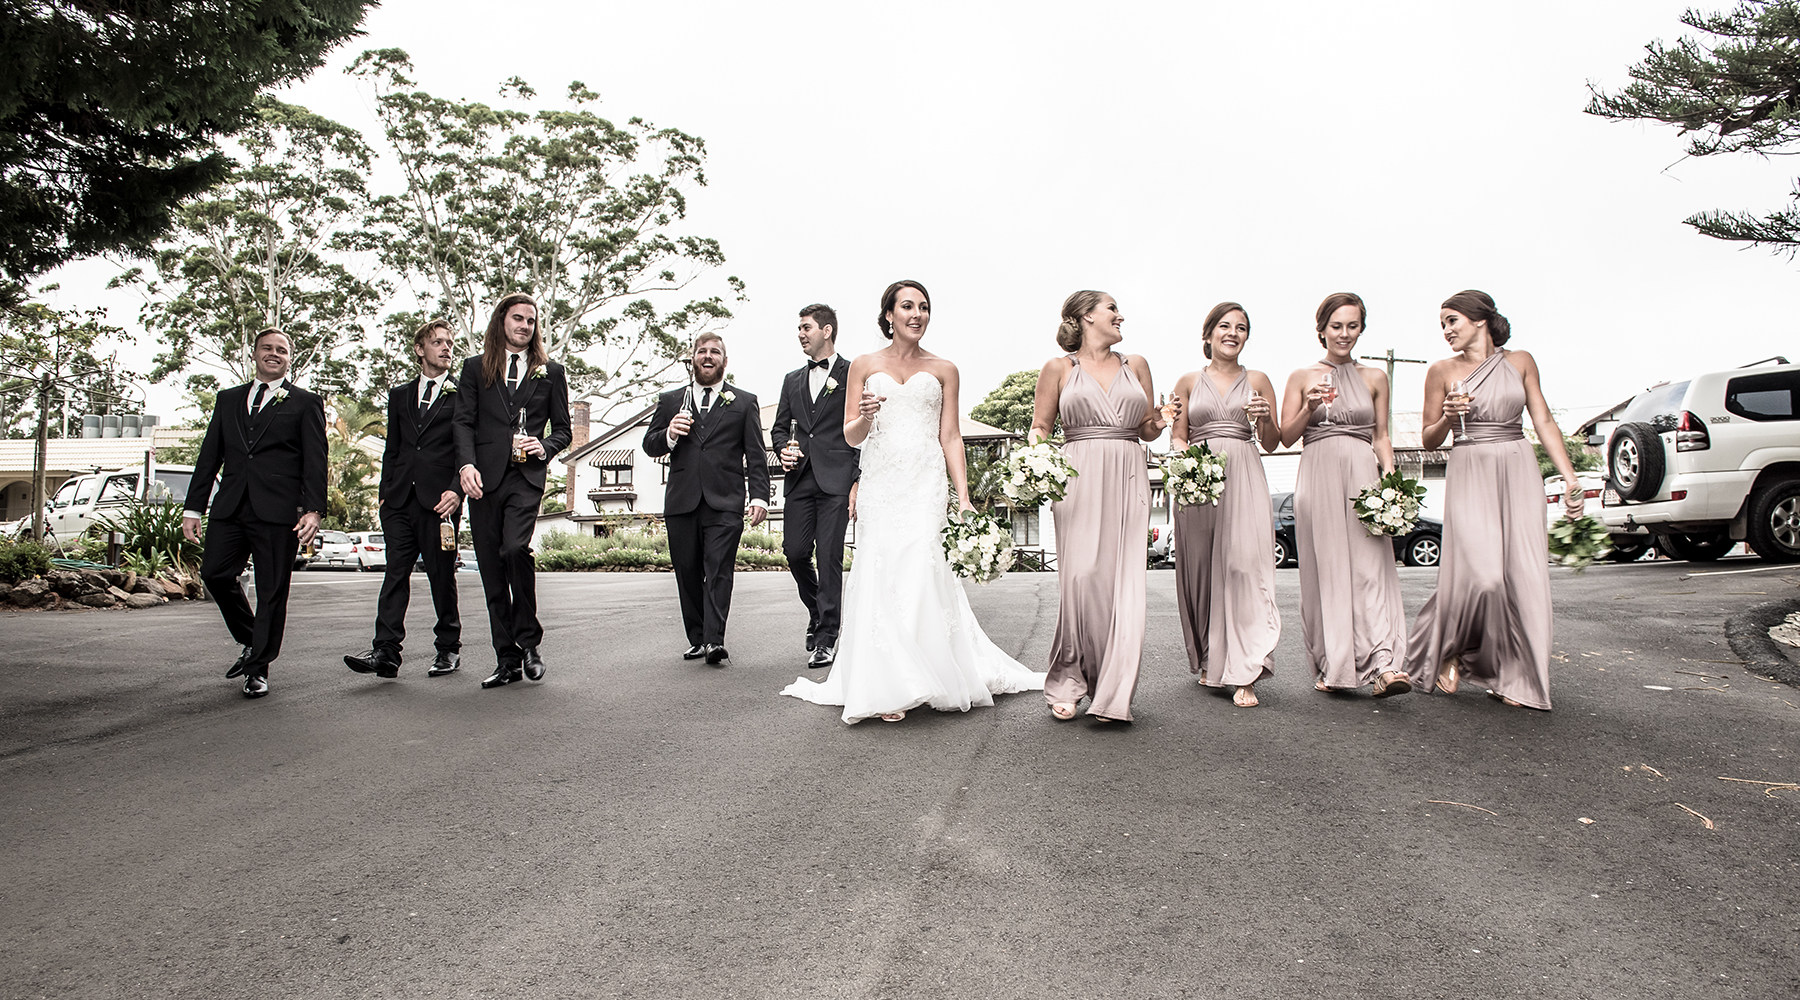 lm-4012a Wedding Photography